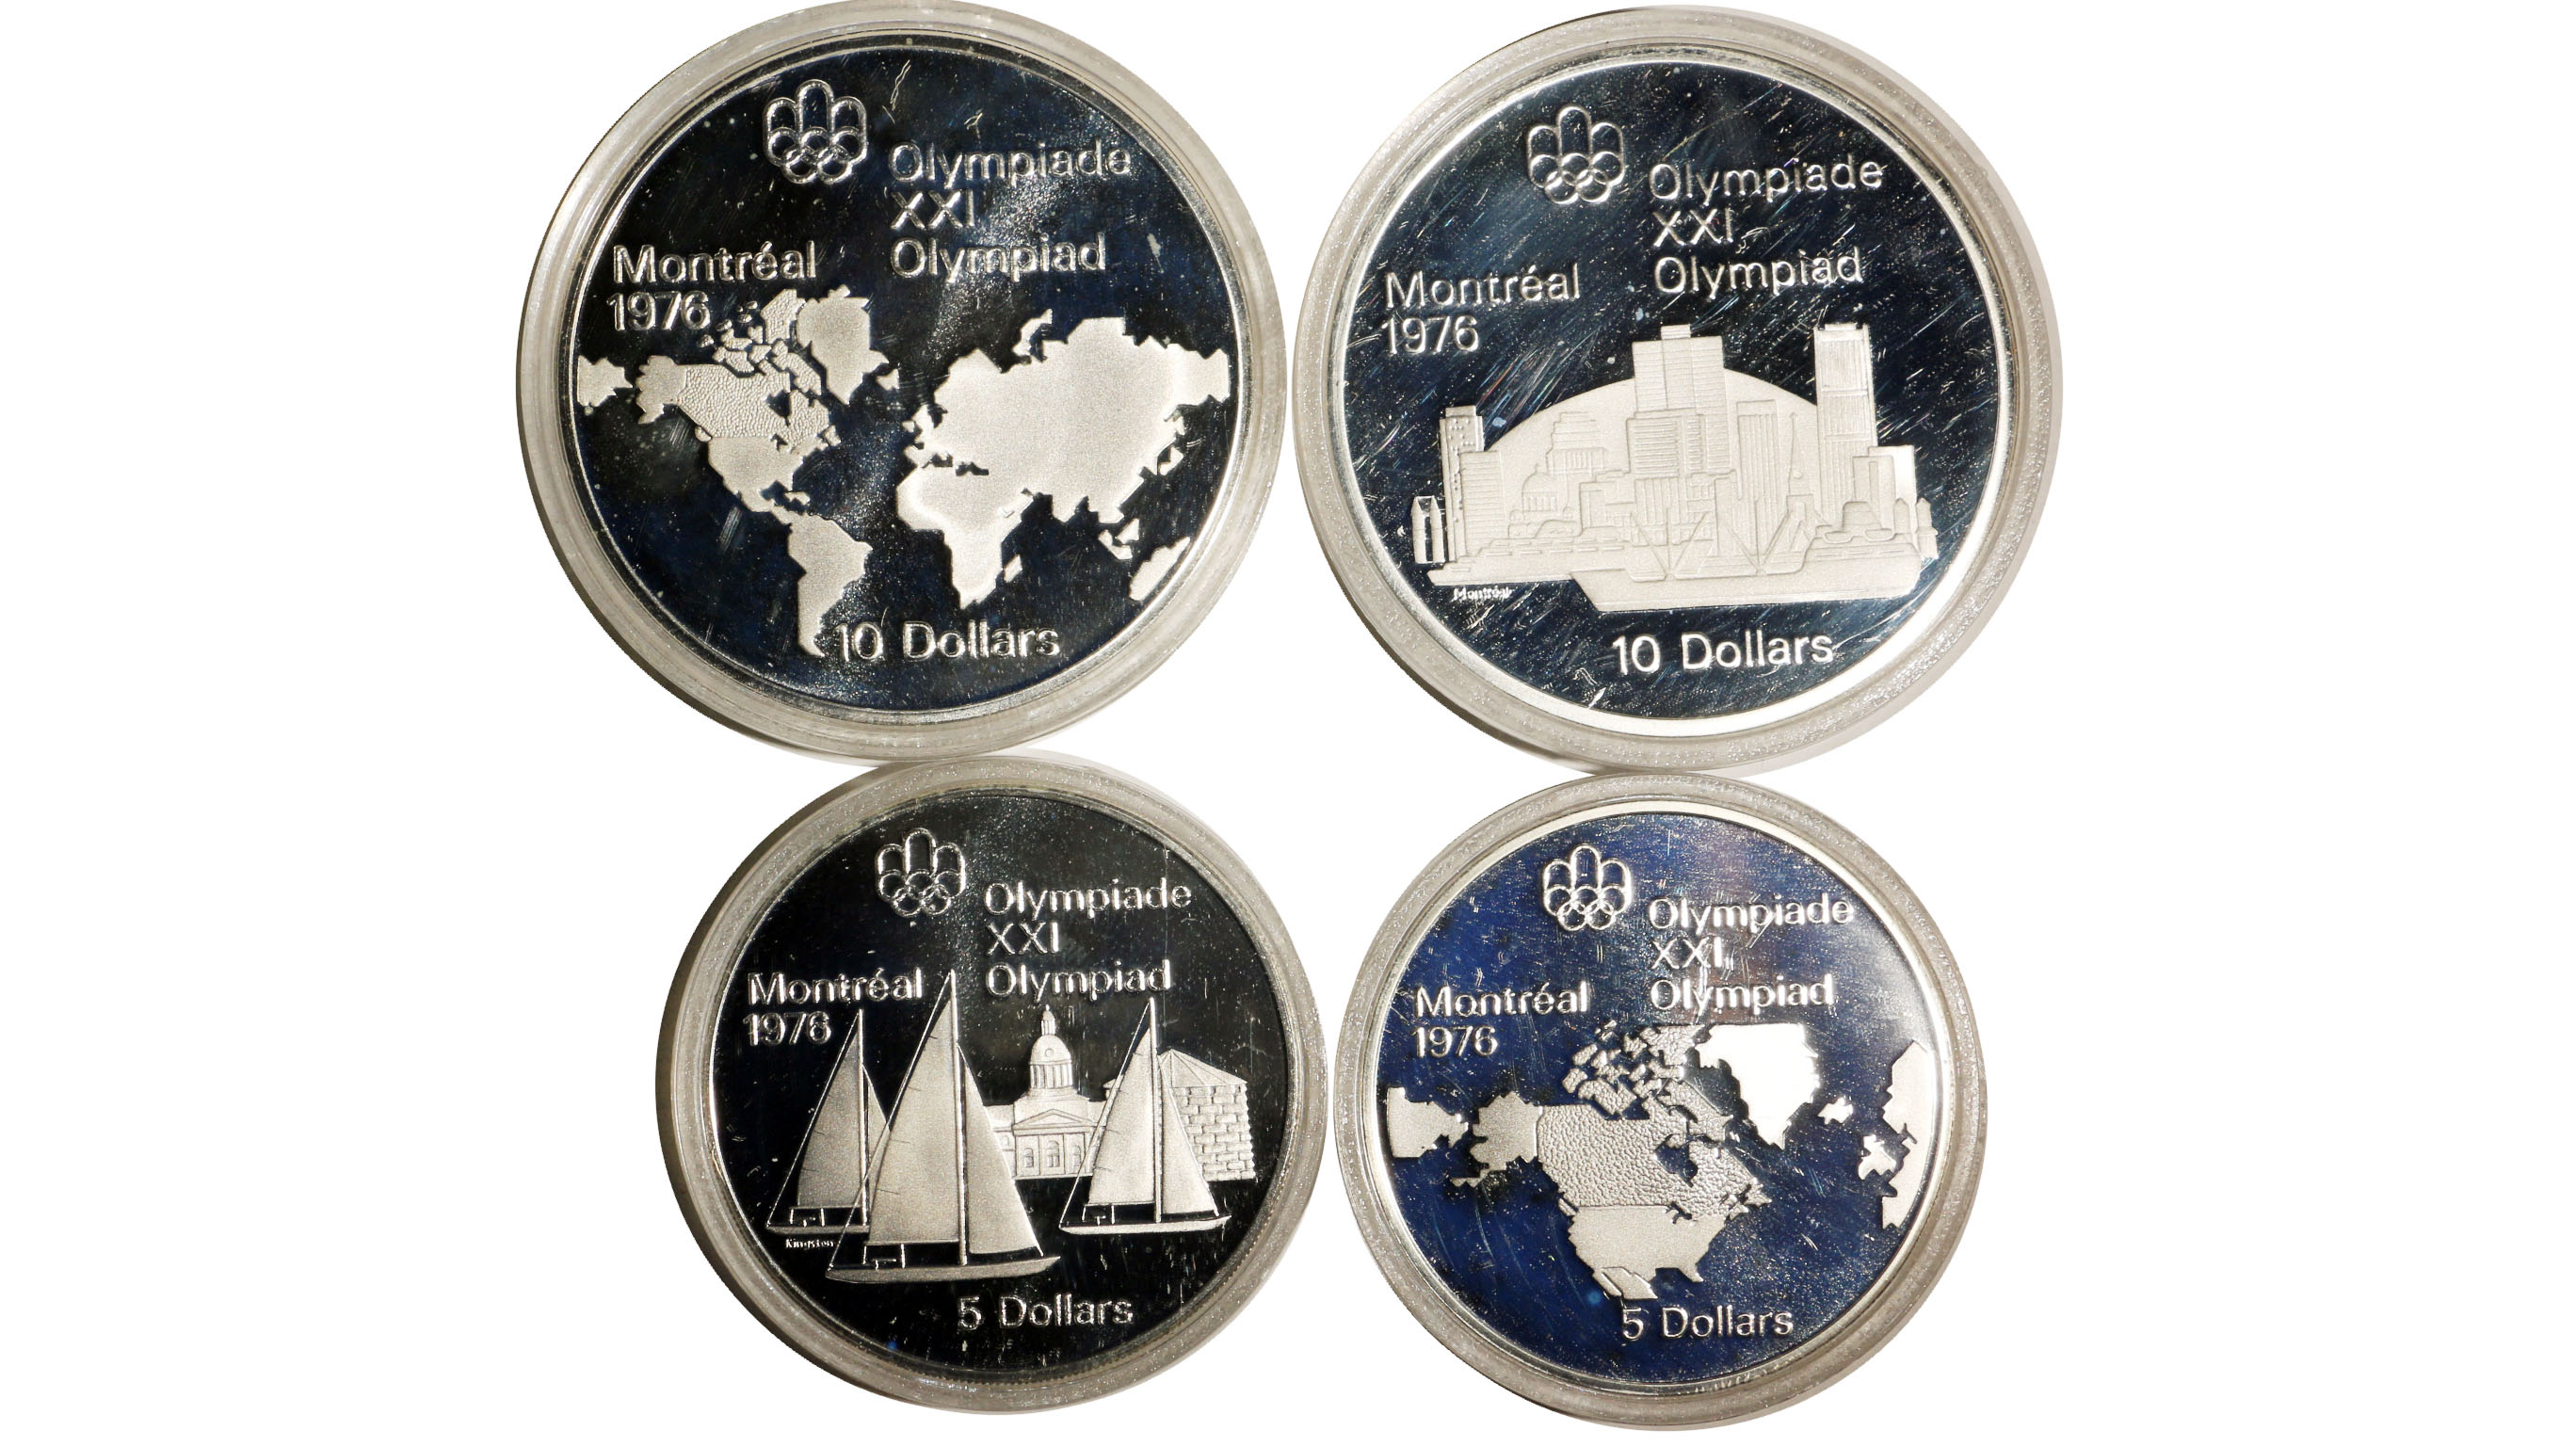 1976 Montreal Olympics Canadian Coin Series 1 Geography Ebay